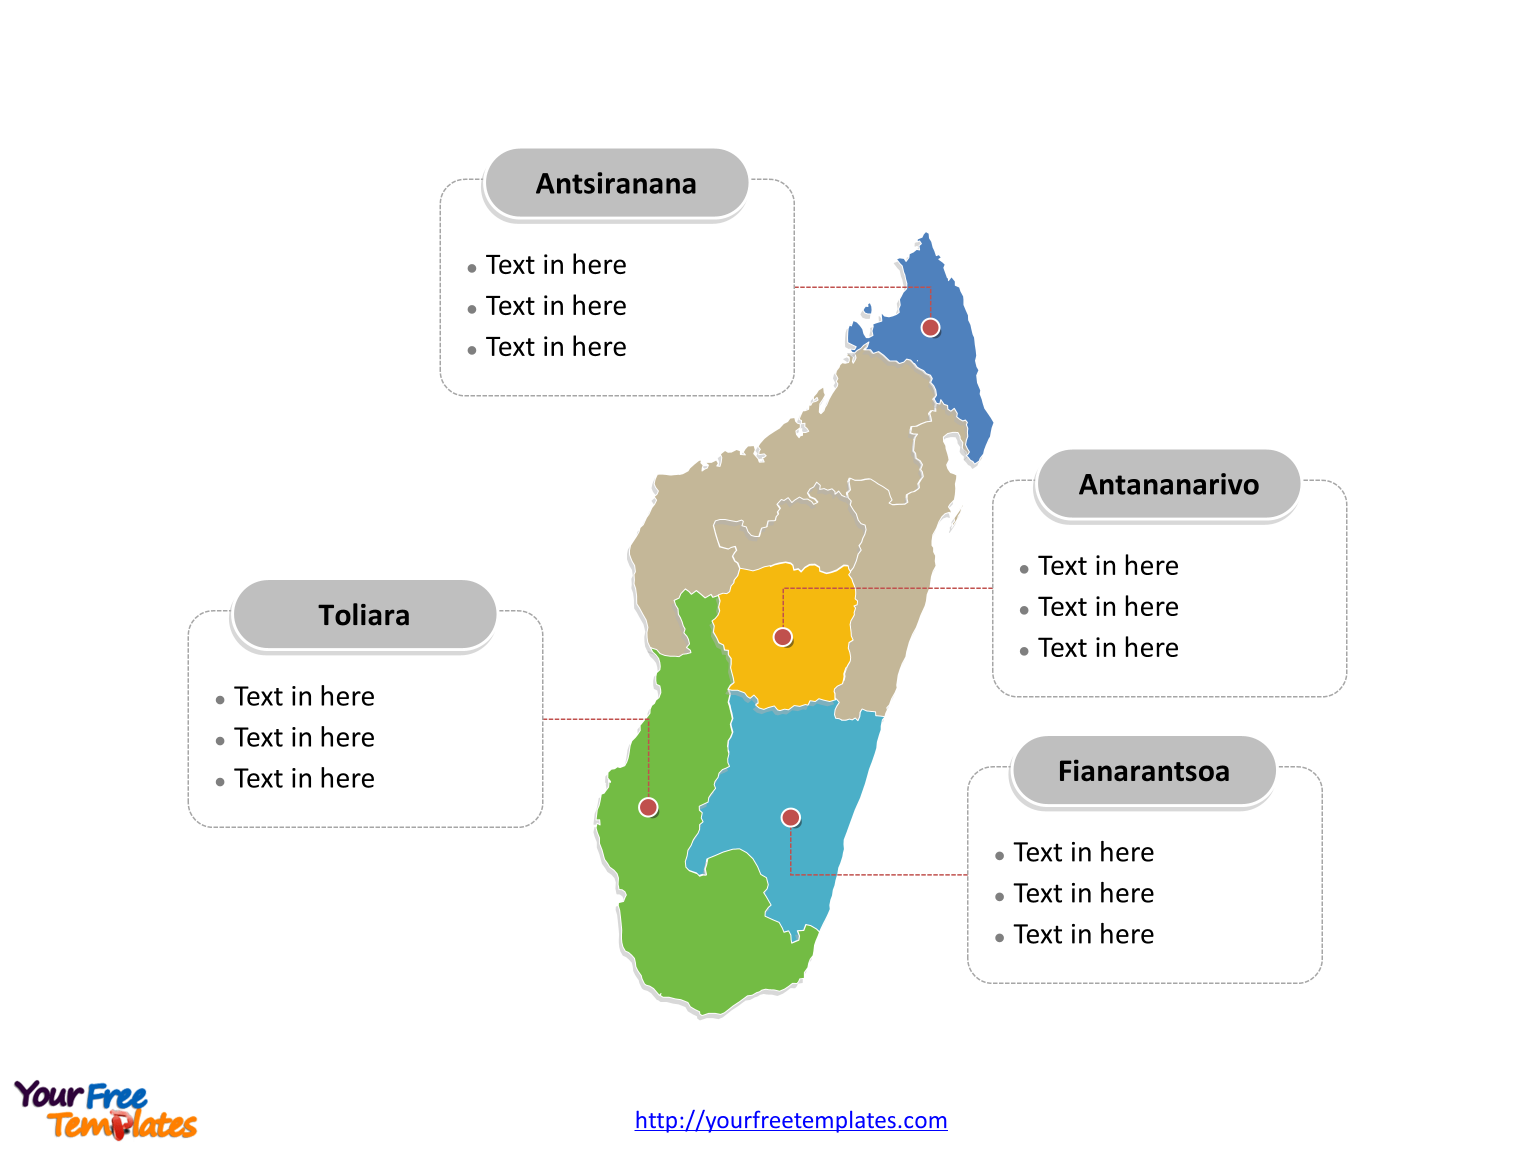 Madagascar Province map labeled with major provinces